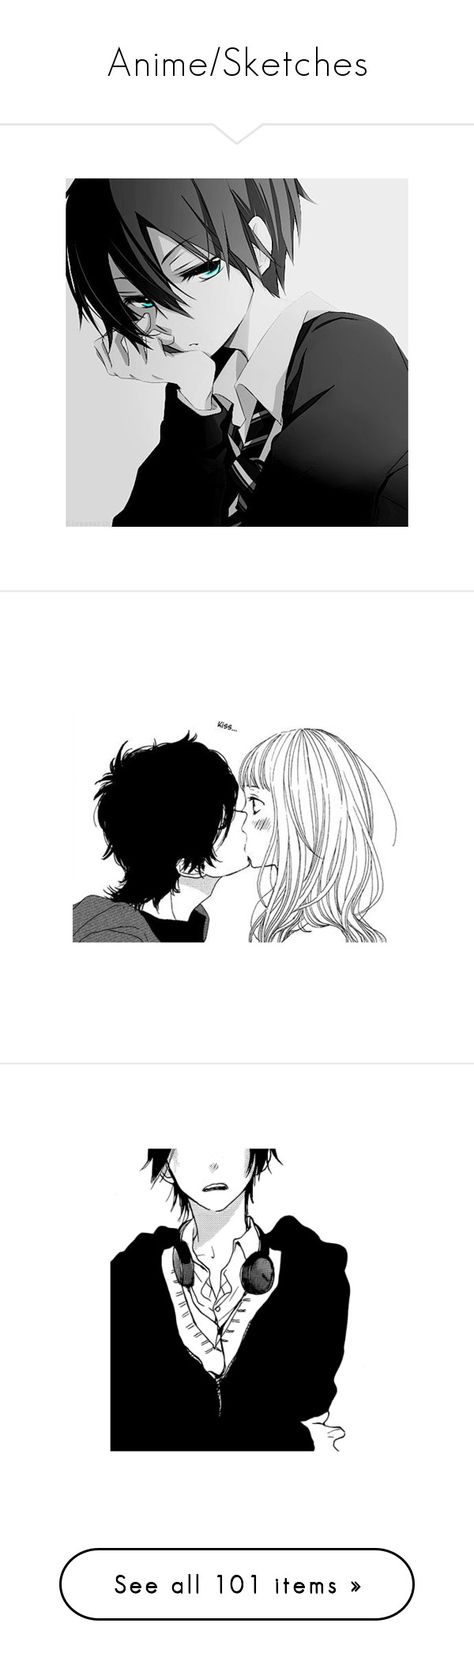 """""""Anime/Sketches"""" by wherewereyou ❤ liked on Polyvore featuring anime, manga, couples, drawings, fillers, doodle, scribble, monochrome, anime boy and vocaloid"""